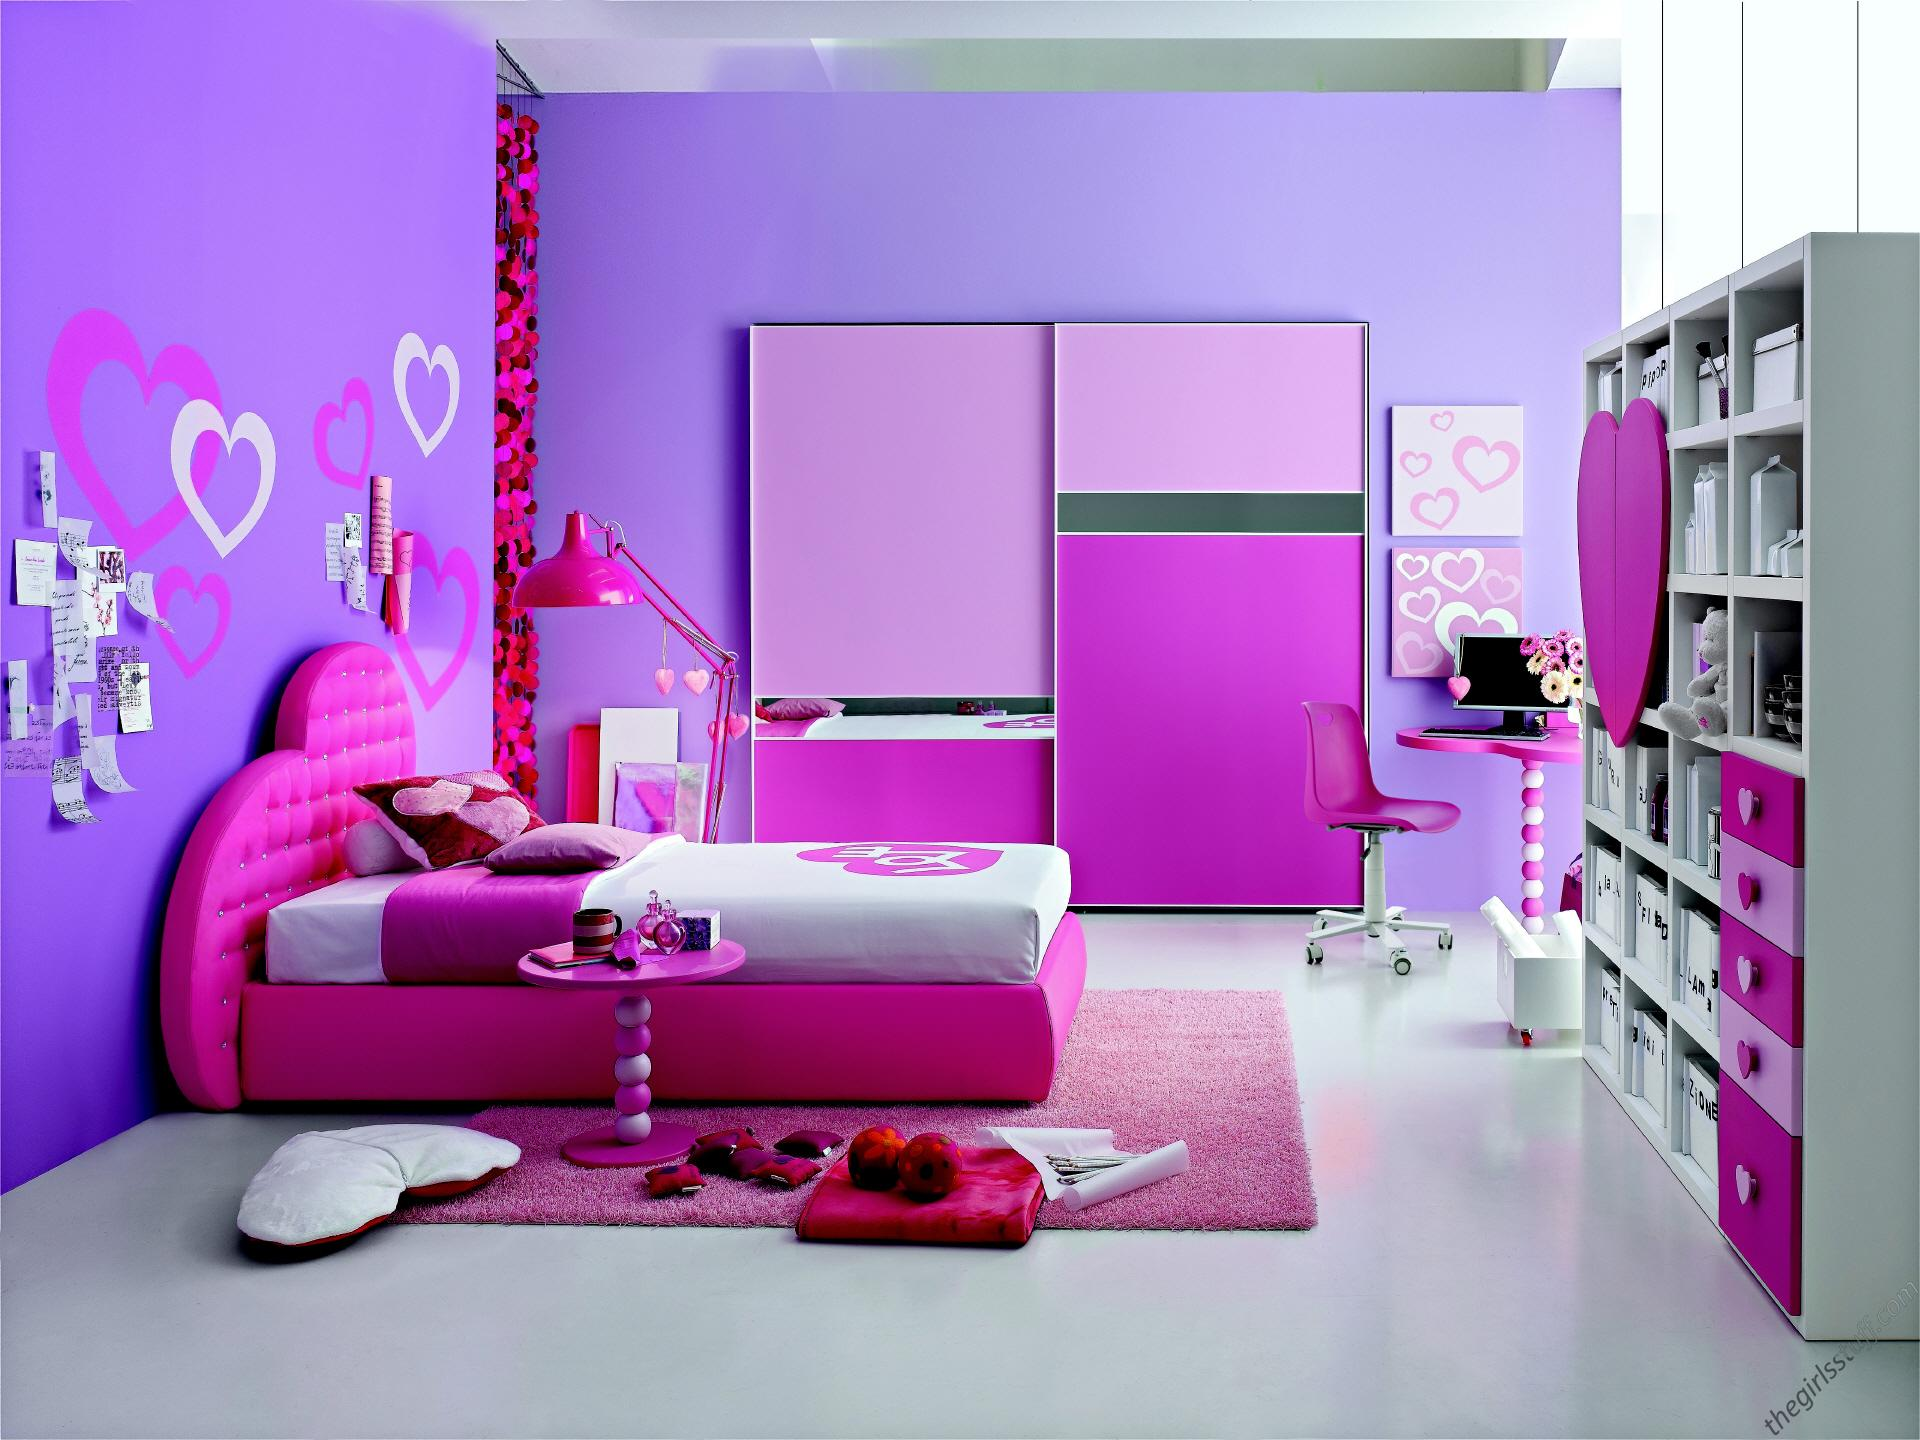 1920x1440 Cool Teen Bedroom Design Ideas with with Car Themed Wallpaper with ...